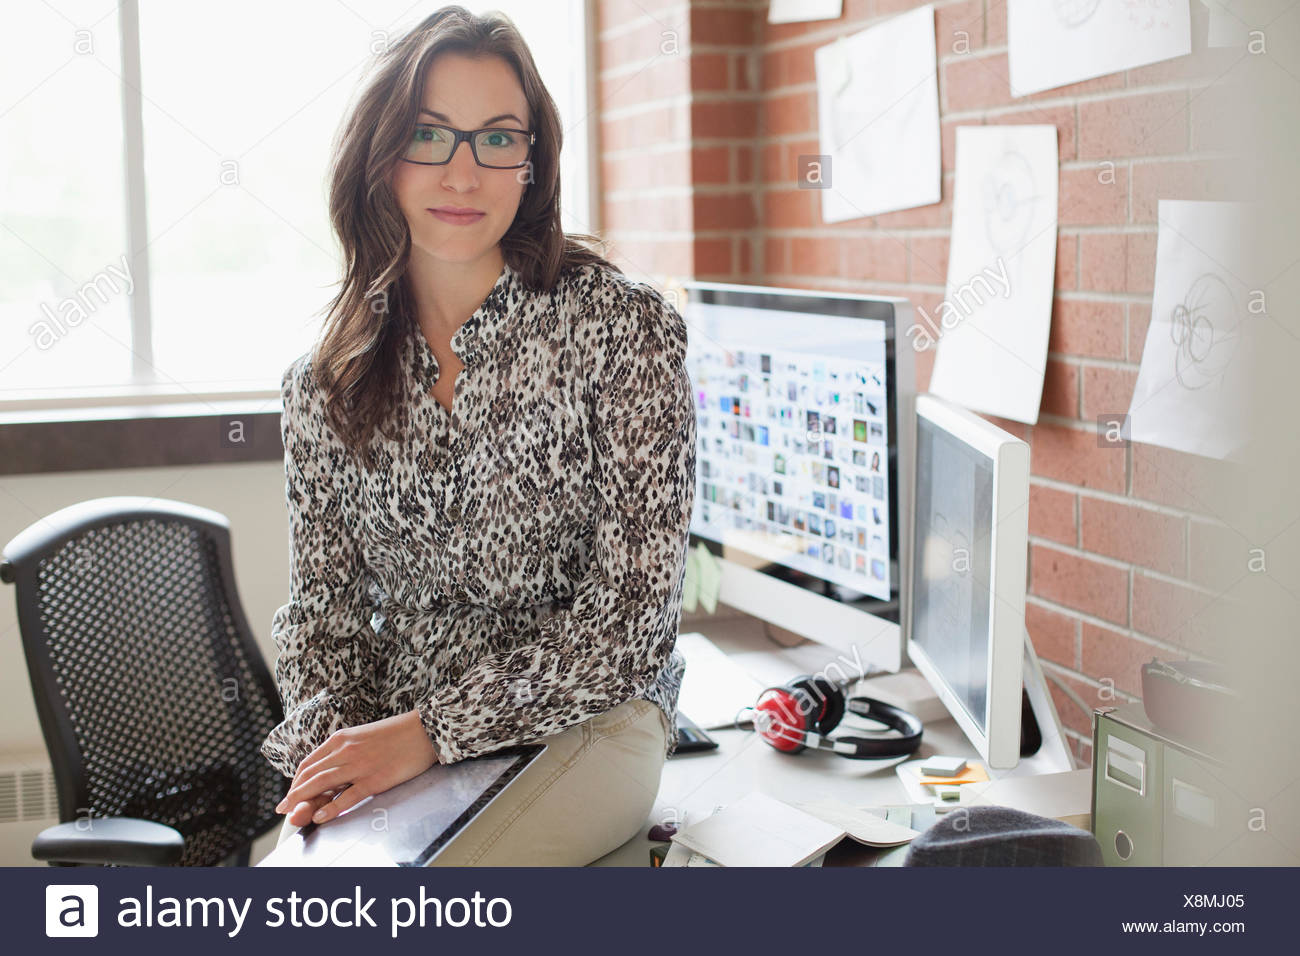 pretty, female industrial designer working in office - Stock Image